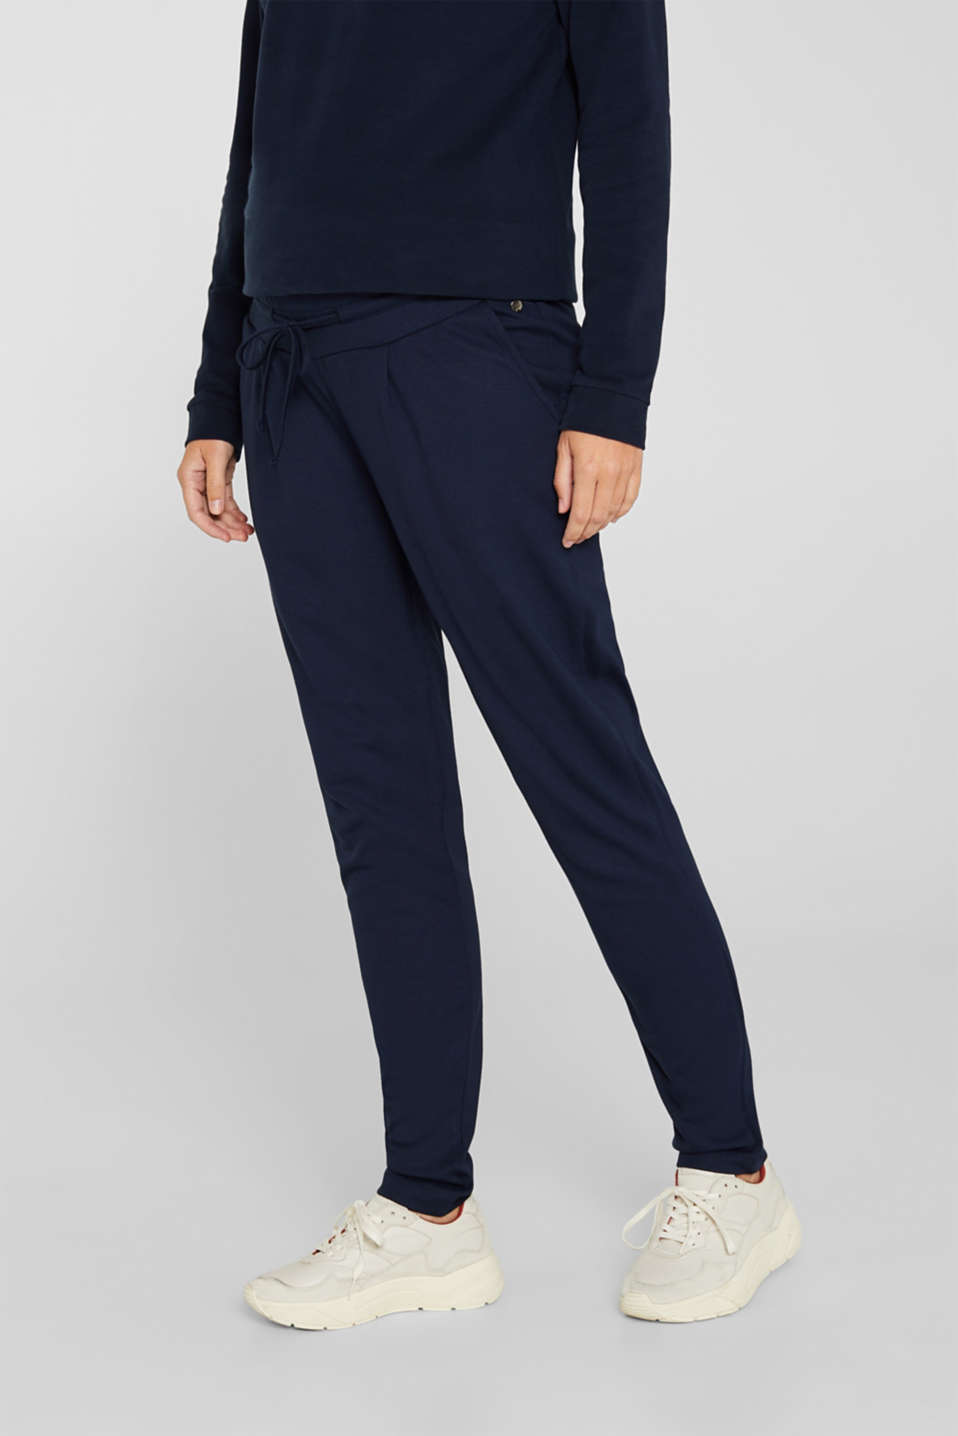 Stretch jersey trousers with under-bump waistband, LCNIGHT BLUE, detail image number 0